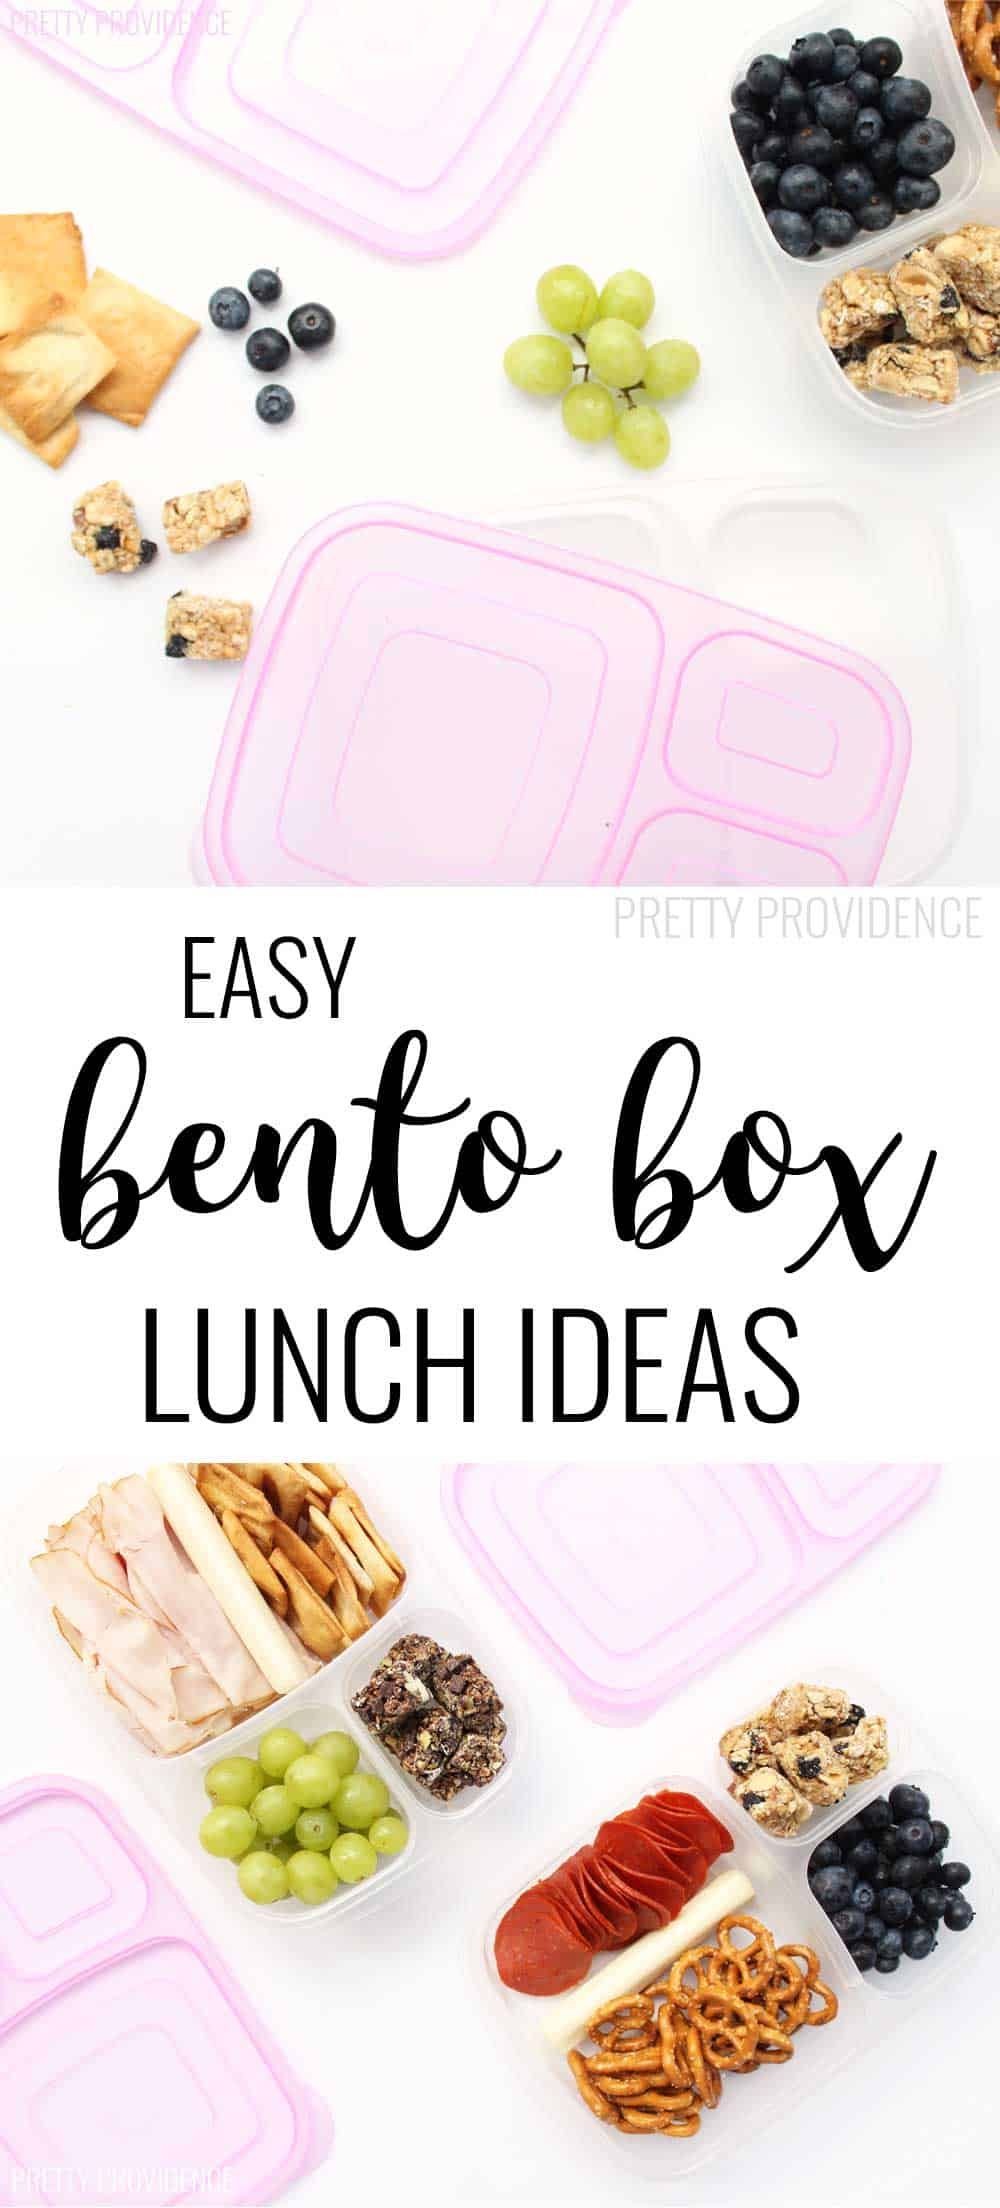 bento box lunch ideas pretty providence. Black Bedroom Furniture Sets. Home Design Ideas